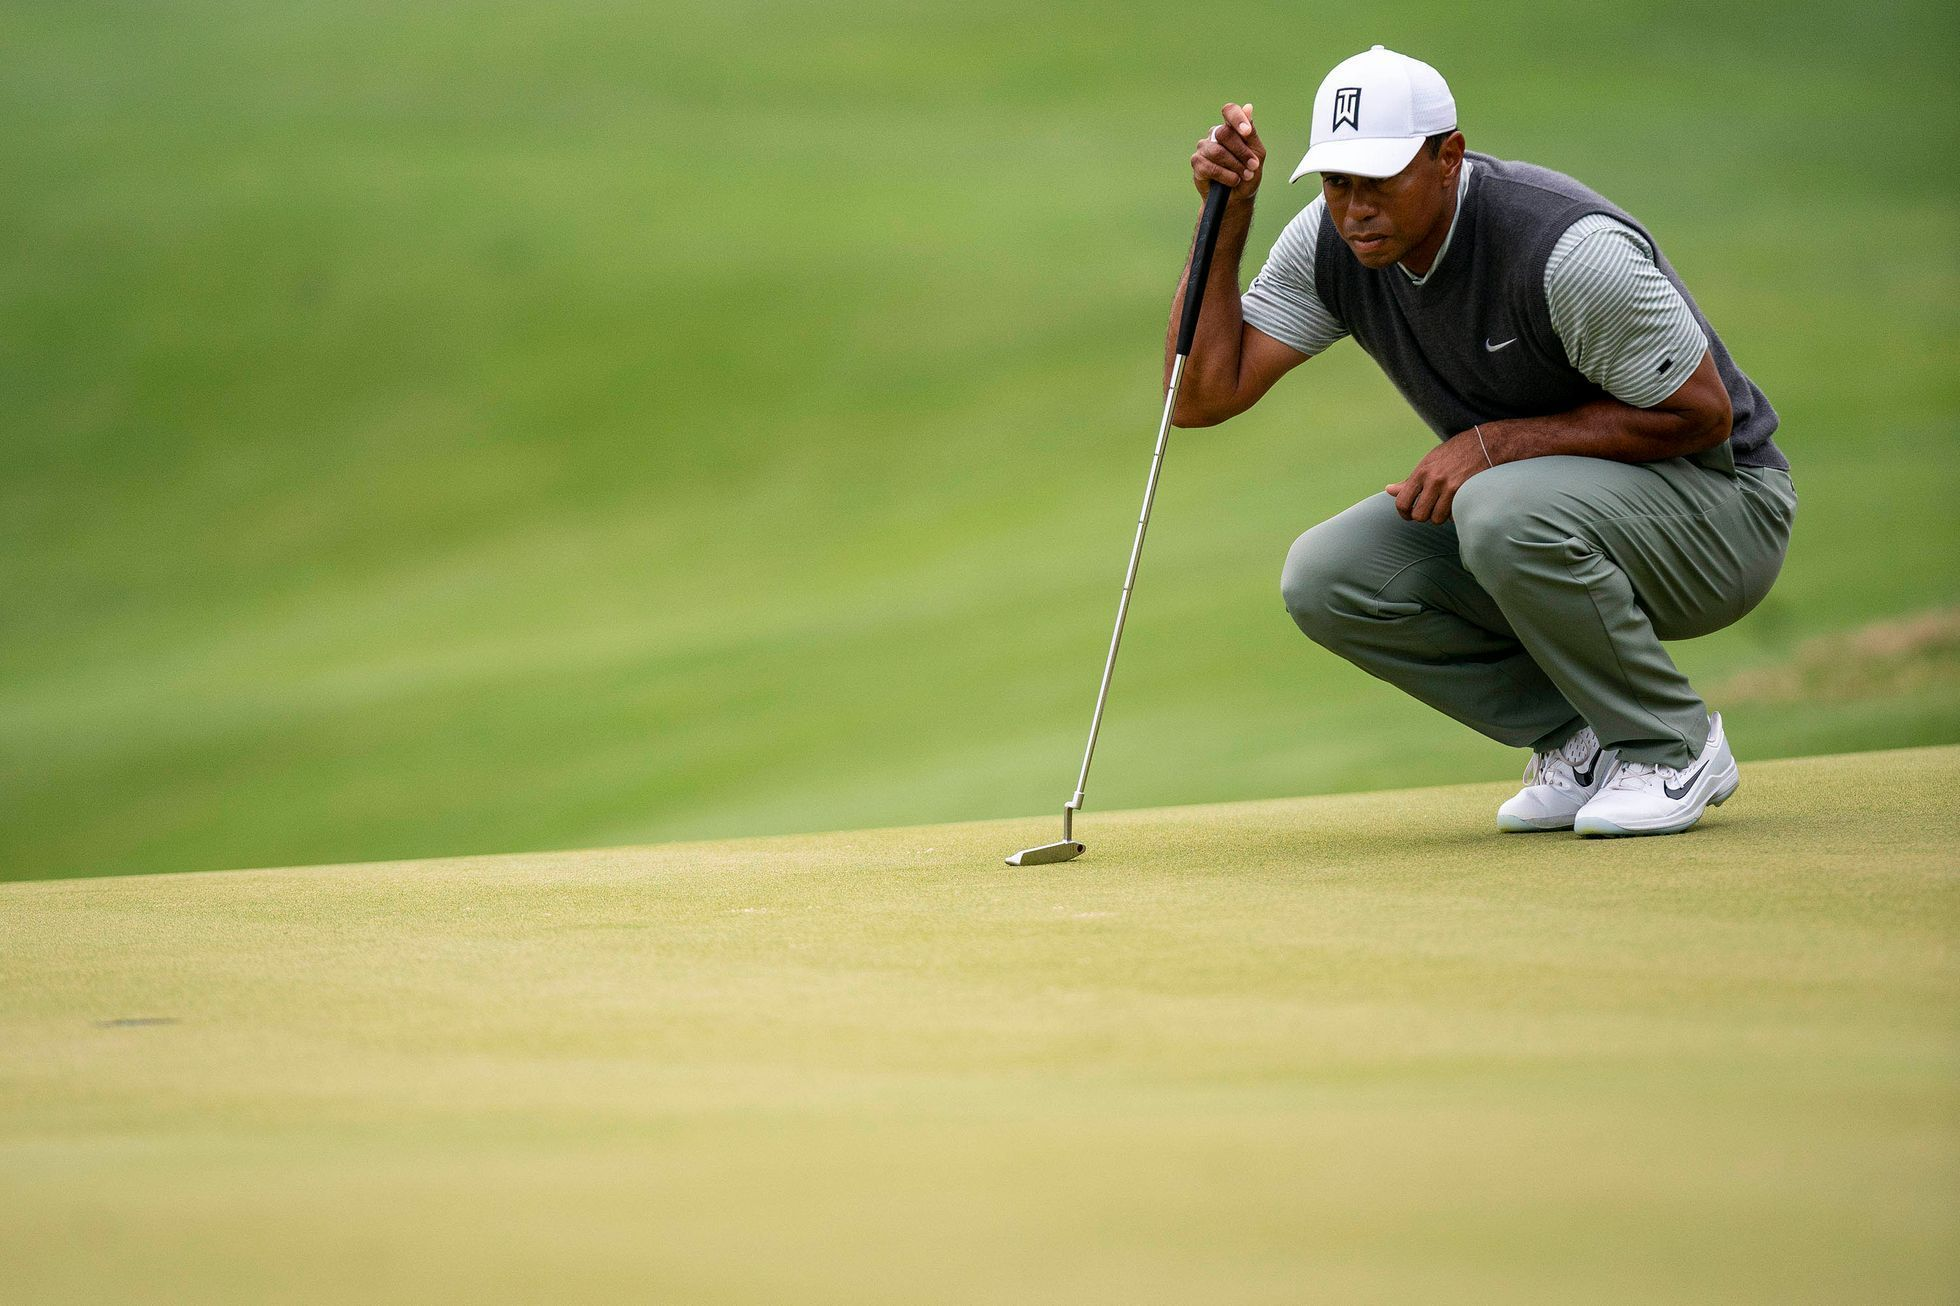 Tiger Woods, Match Play 2019